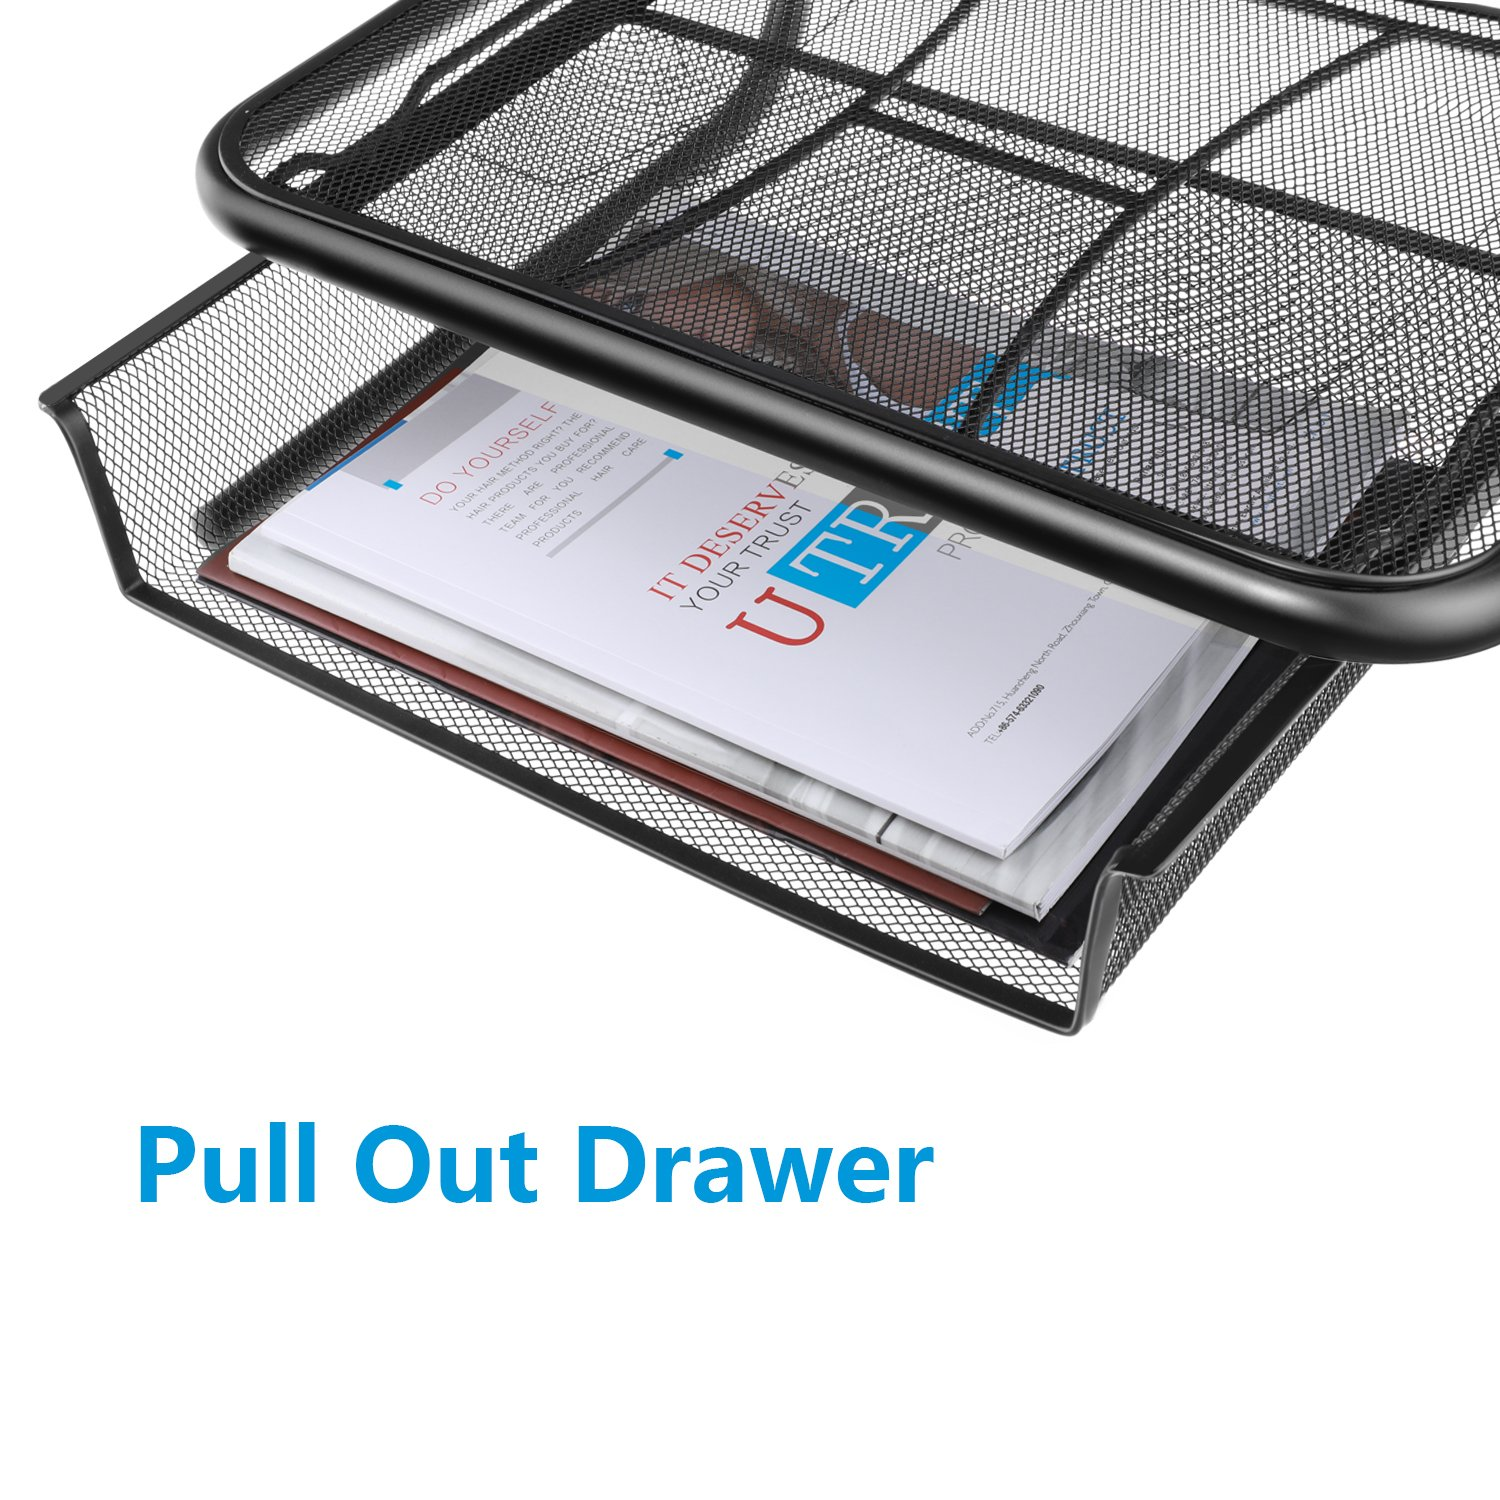 Monitor Stand Riser with Pull Out Storage Drawer - Mesh Metal Printer Holder with Ventilated Surface for Computer, Laptop, Printers - Keeps Your Devices Cool & Prevents Overheating - Premium Computer by HUANUO (Image #4)